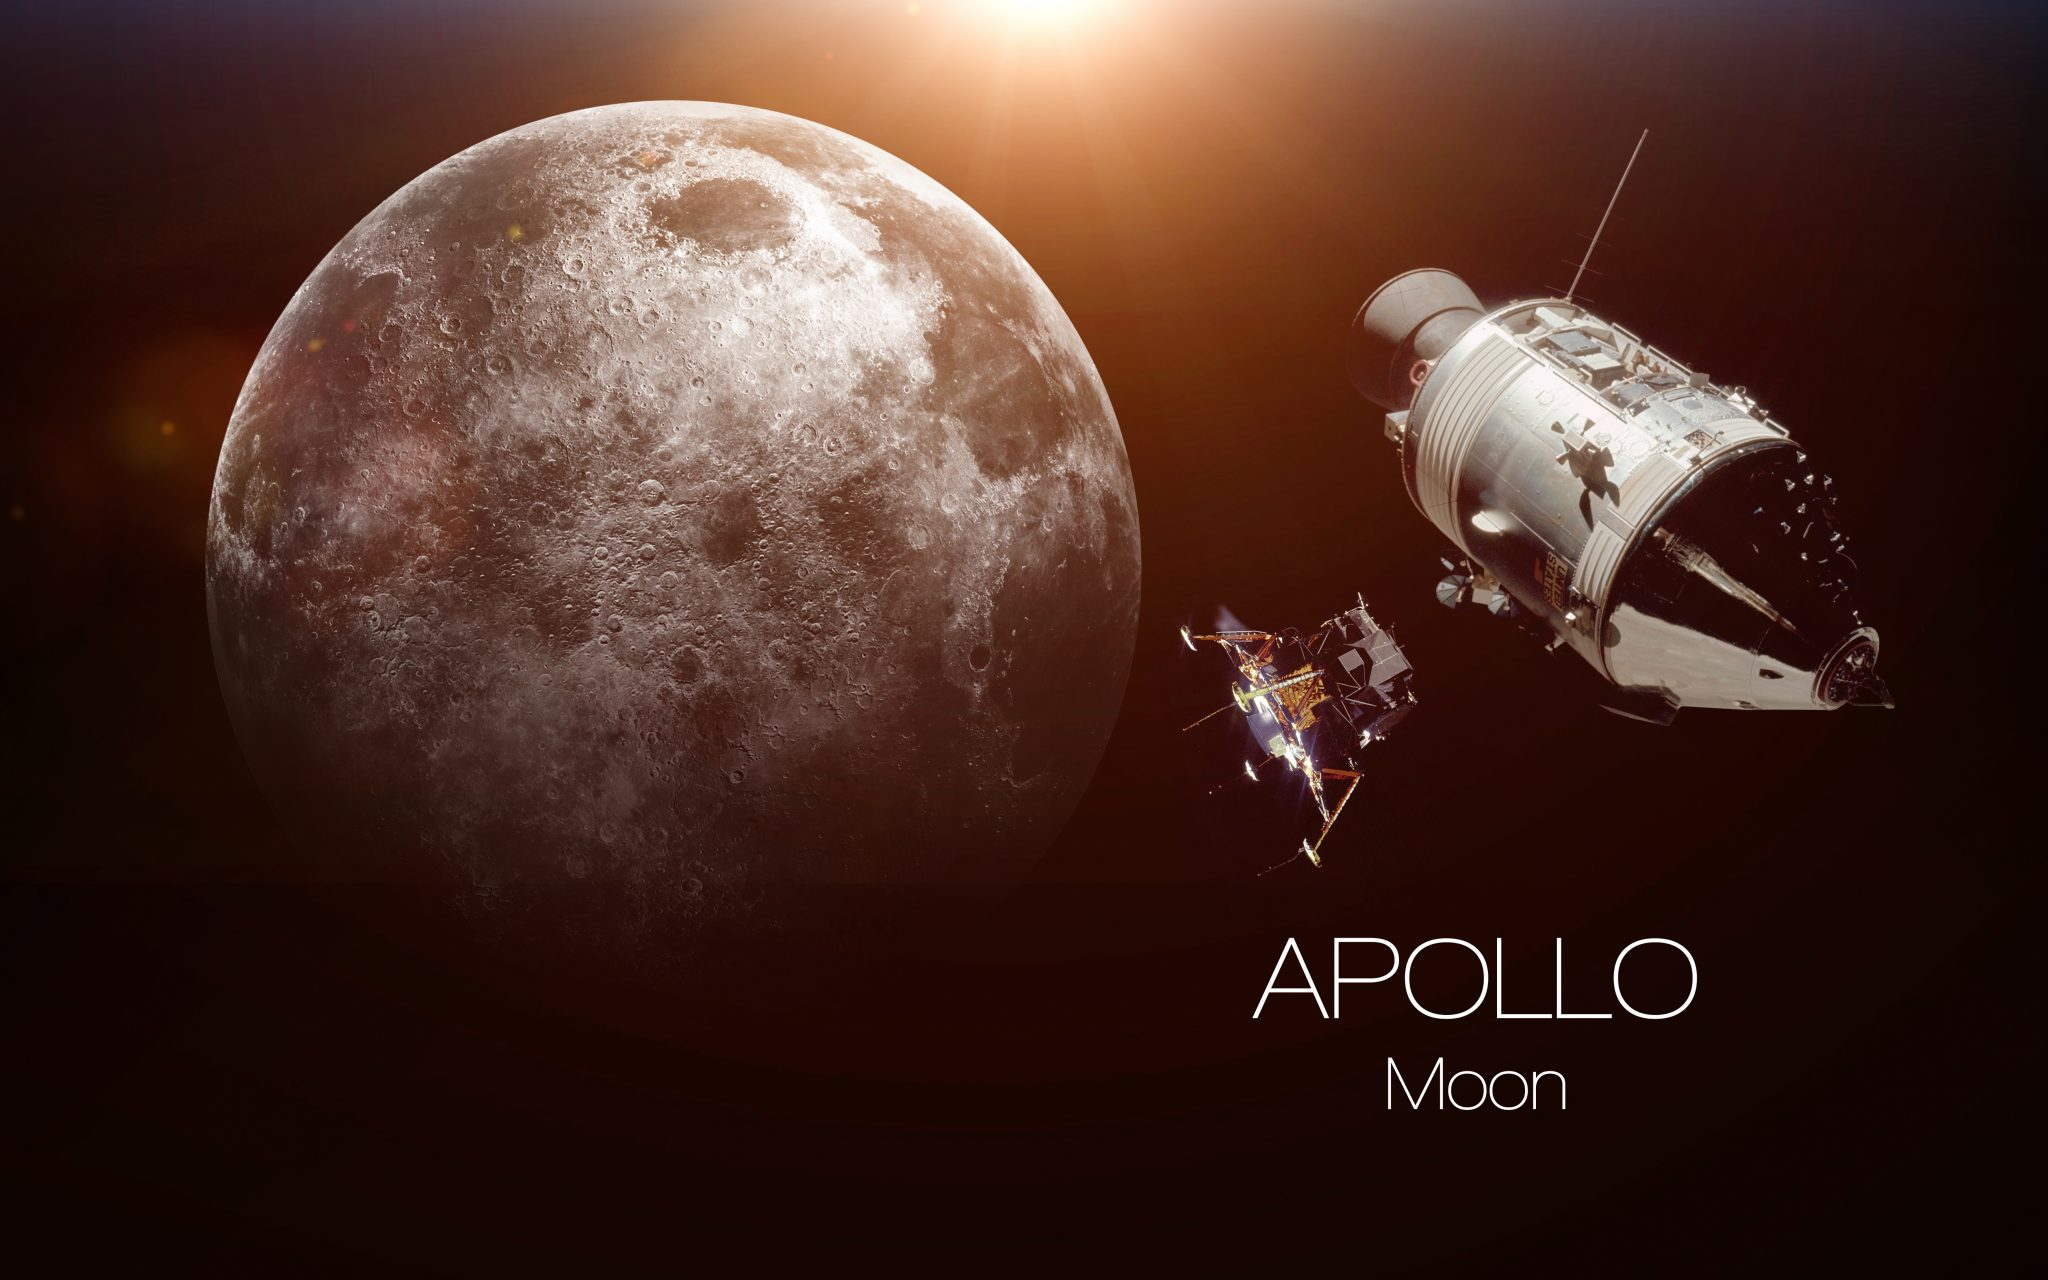 Apollo Paves the Way for the Next Great Space Adventure